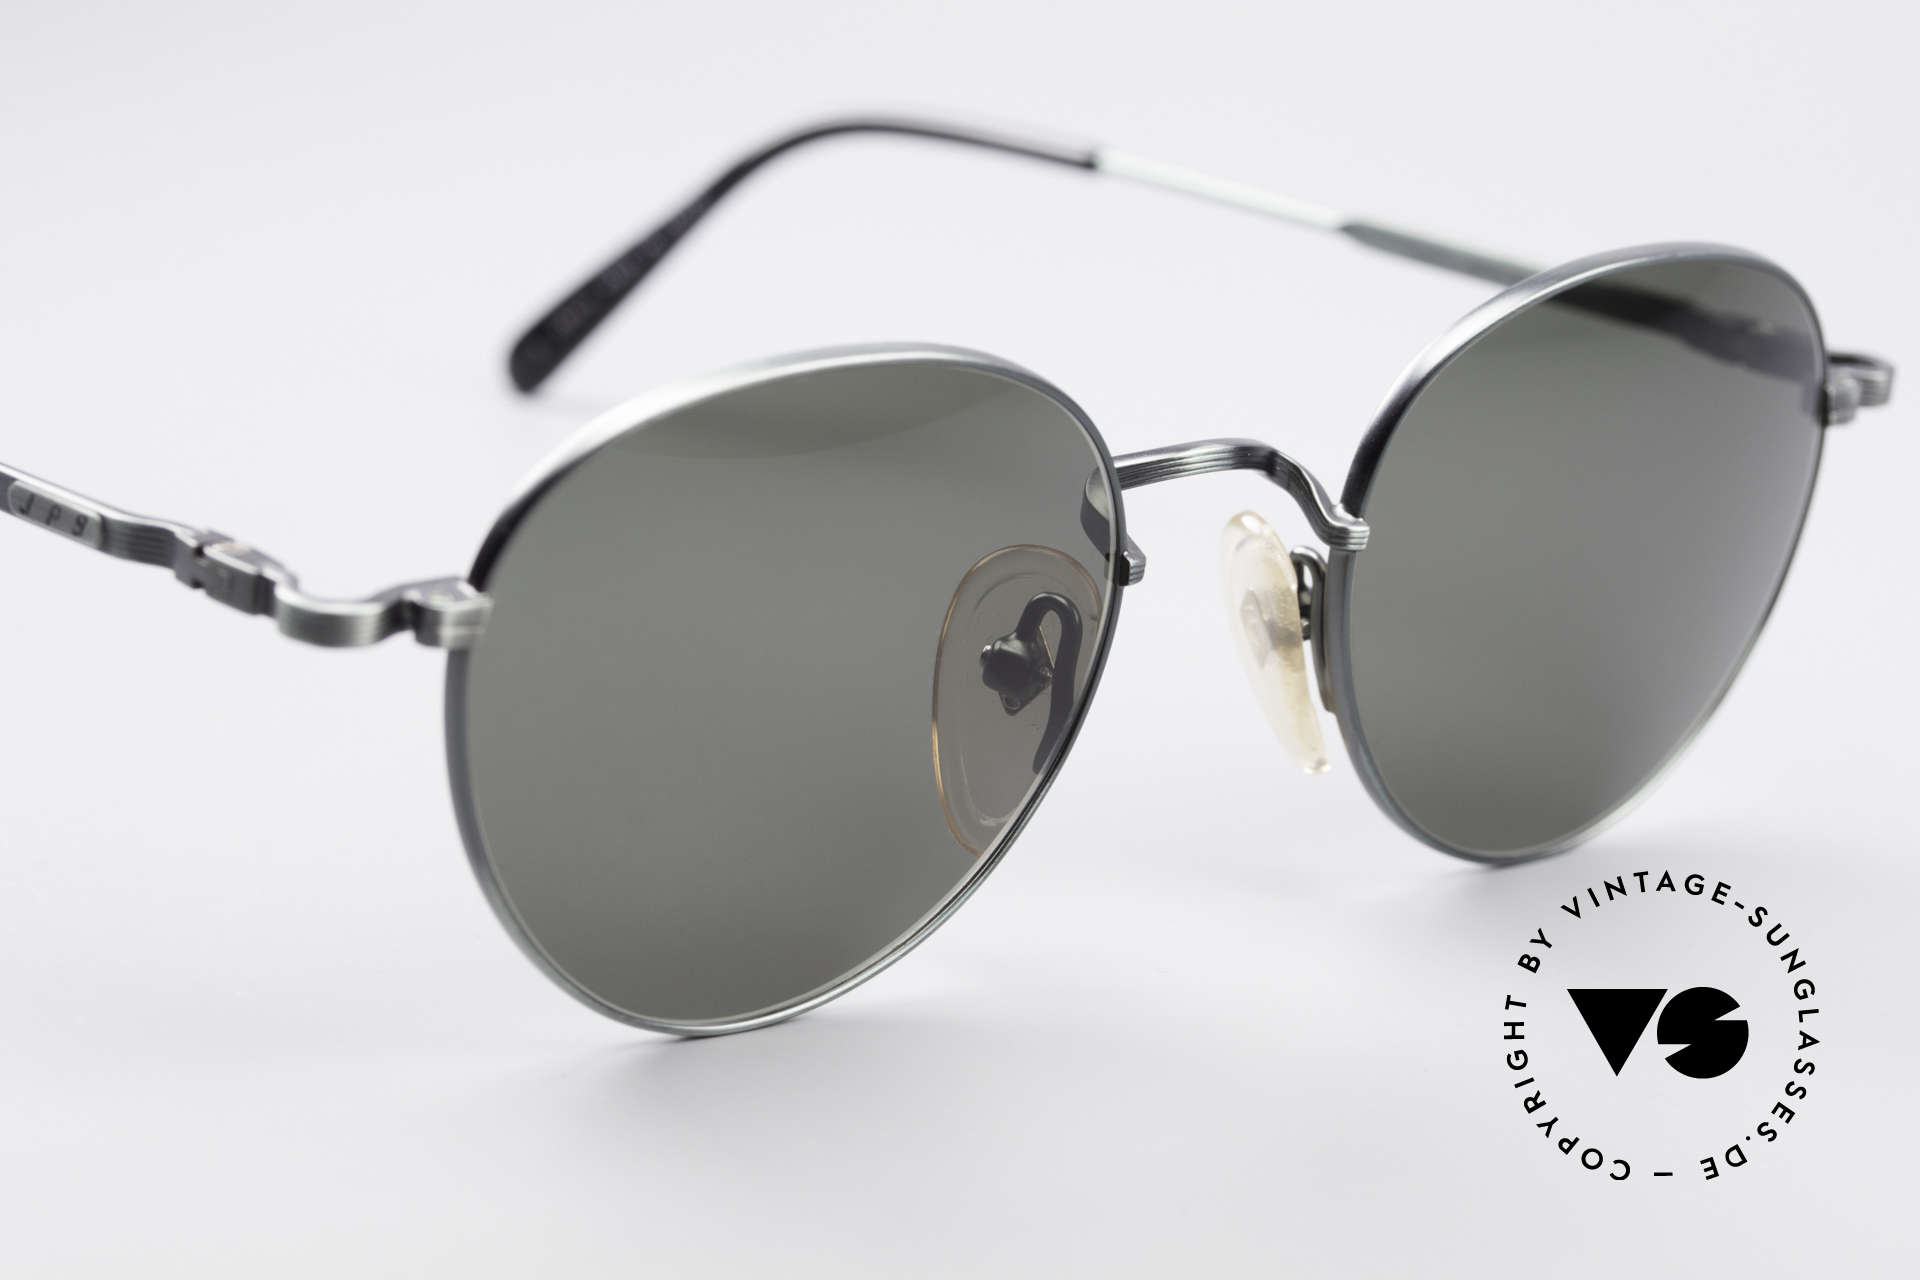 Jean Paul Gaultier 55-1174 Round Vintage Sunglasses, unworn (like all our rare vintage 90's designer glasses), Made for Men and Women